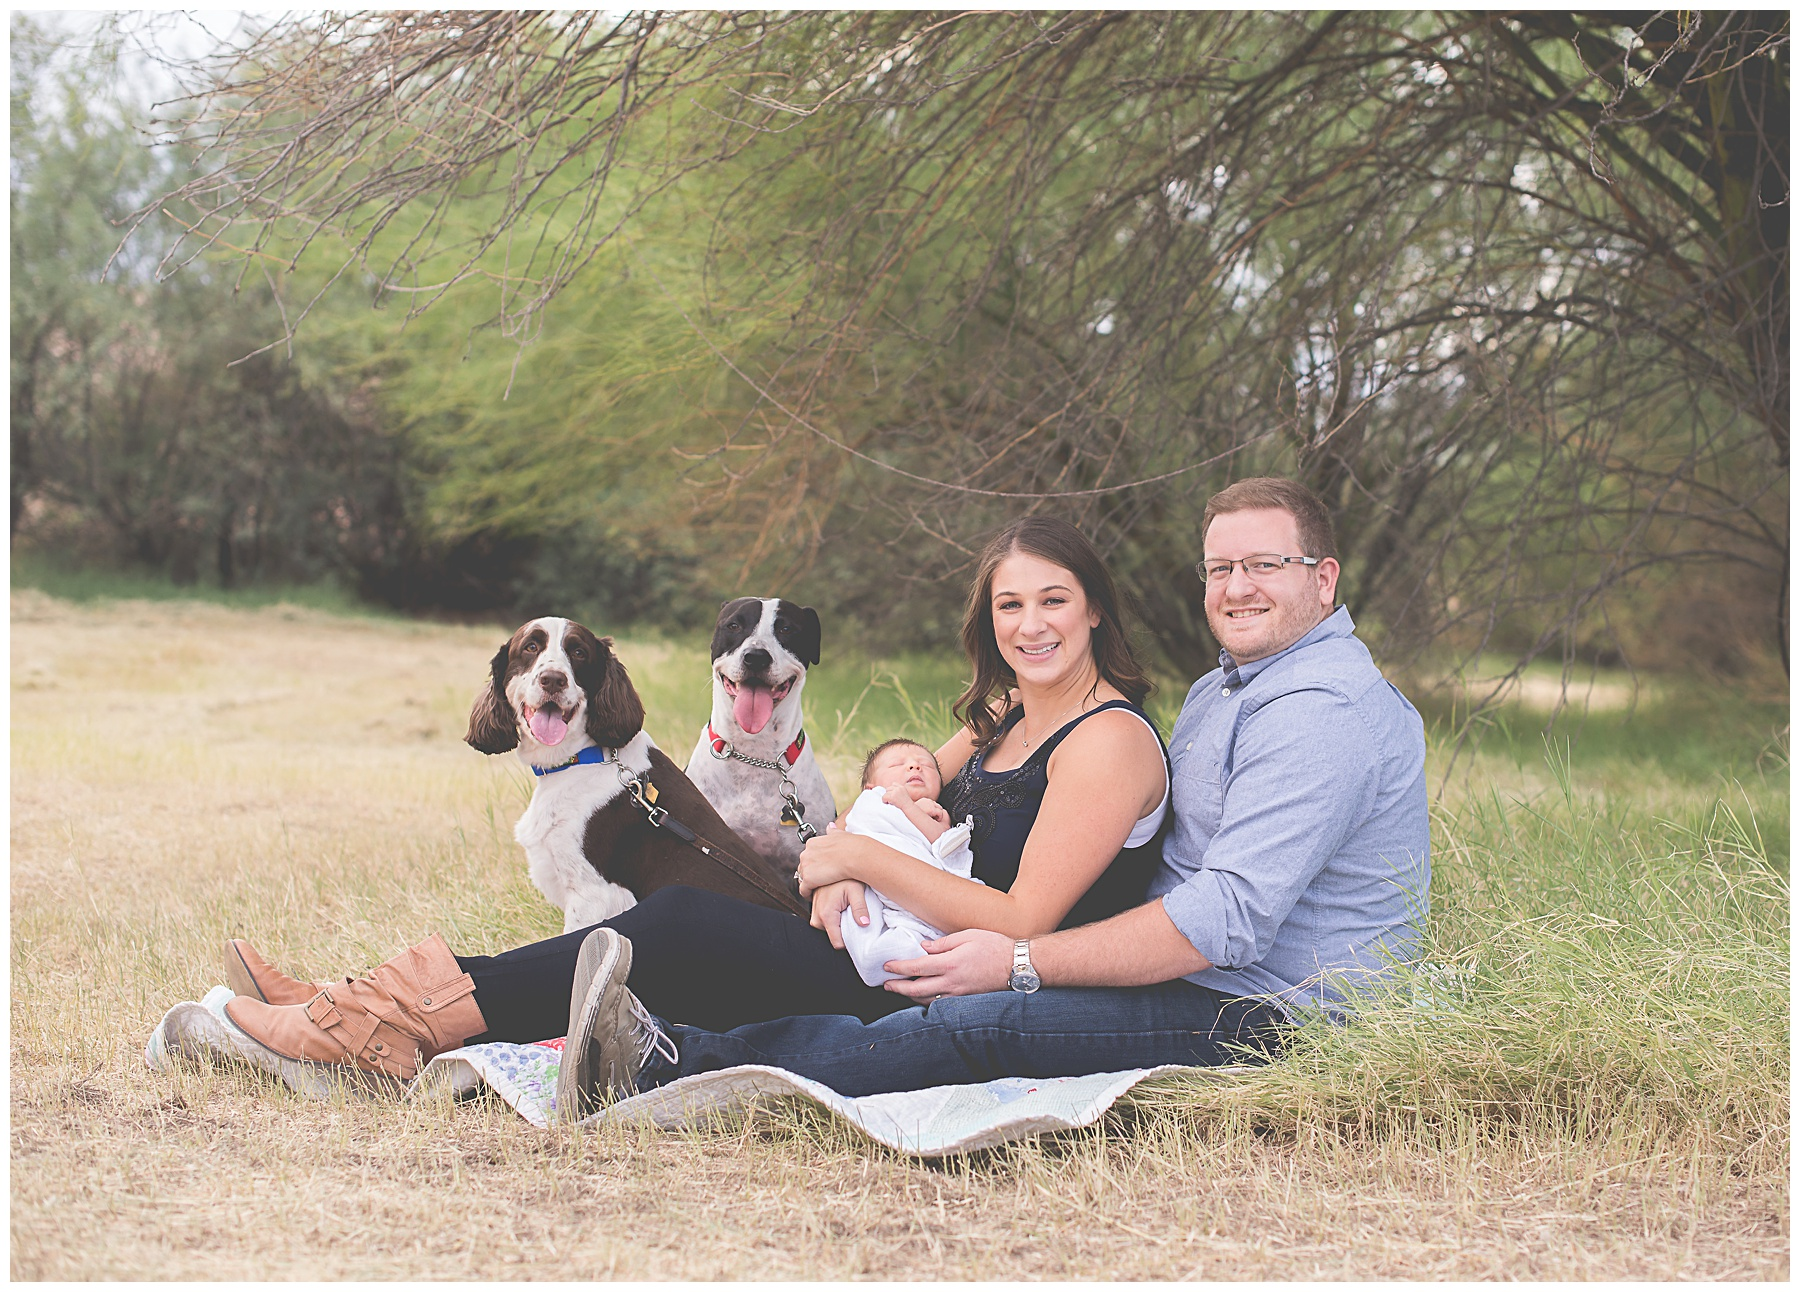 Phoenix Outdoor Lifestyle Newborn session with dogs | Sweetlife Photography